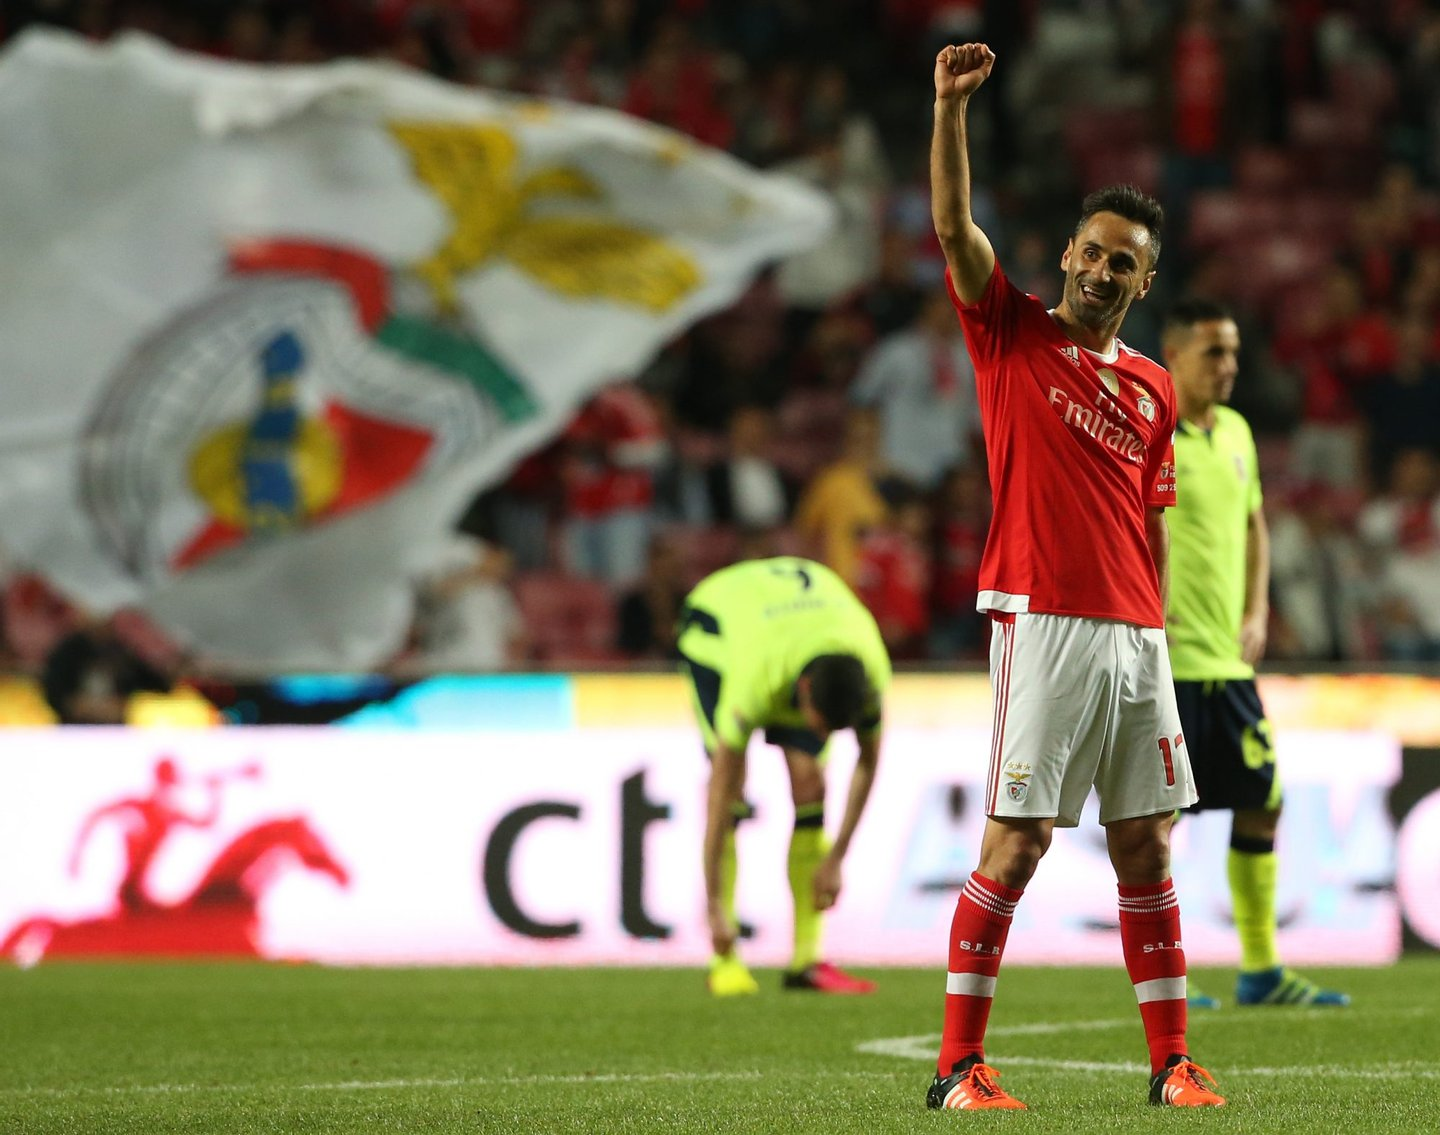 LISBON, PORTUGAL - MAY 2: SL Benfica's forward from Brazil Jonas celebrates after scoring a goal during the Taca CTT match between SL Benfica and SC Braga at Estadio da Luz on May 2, 2016 in Lisbon, Portugal. (Photo by Gualter Fatia/Getty Images)